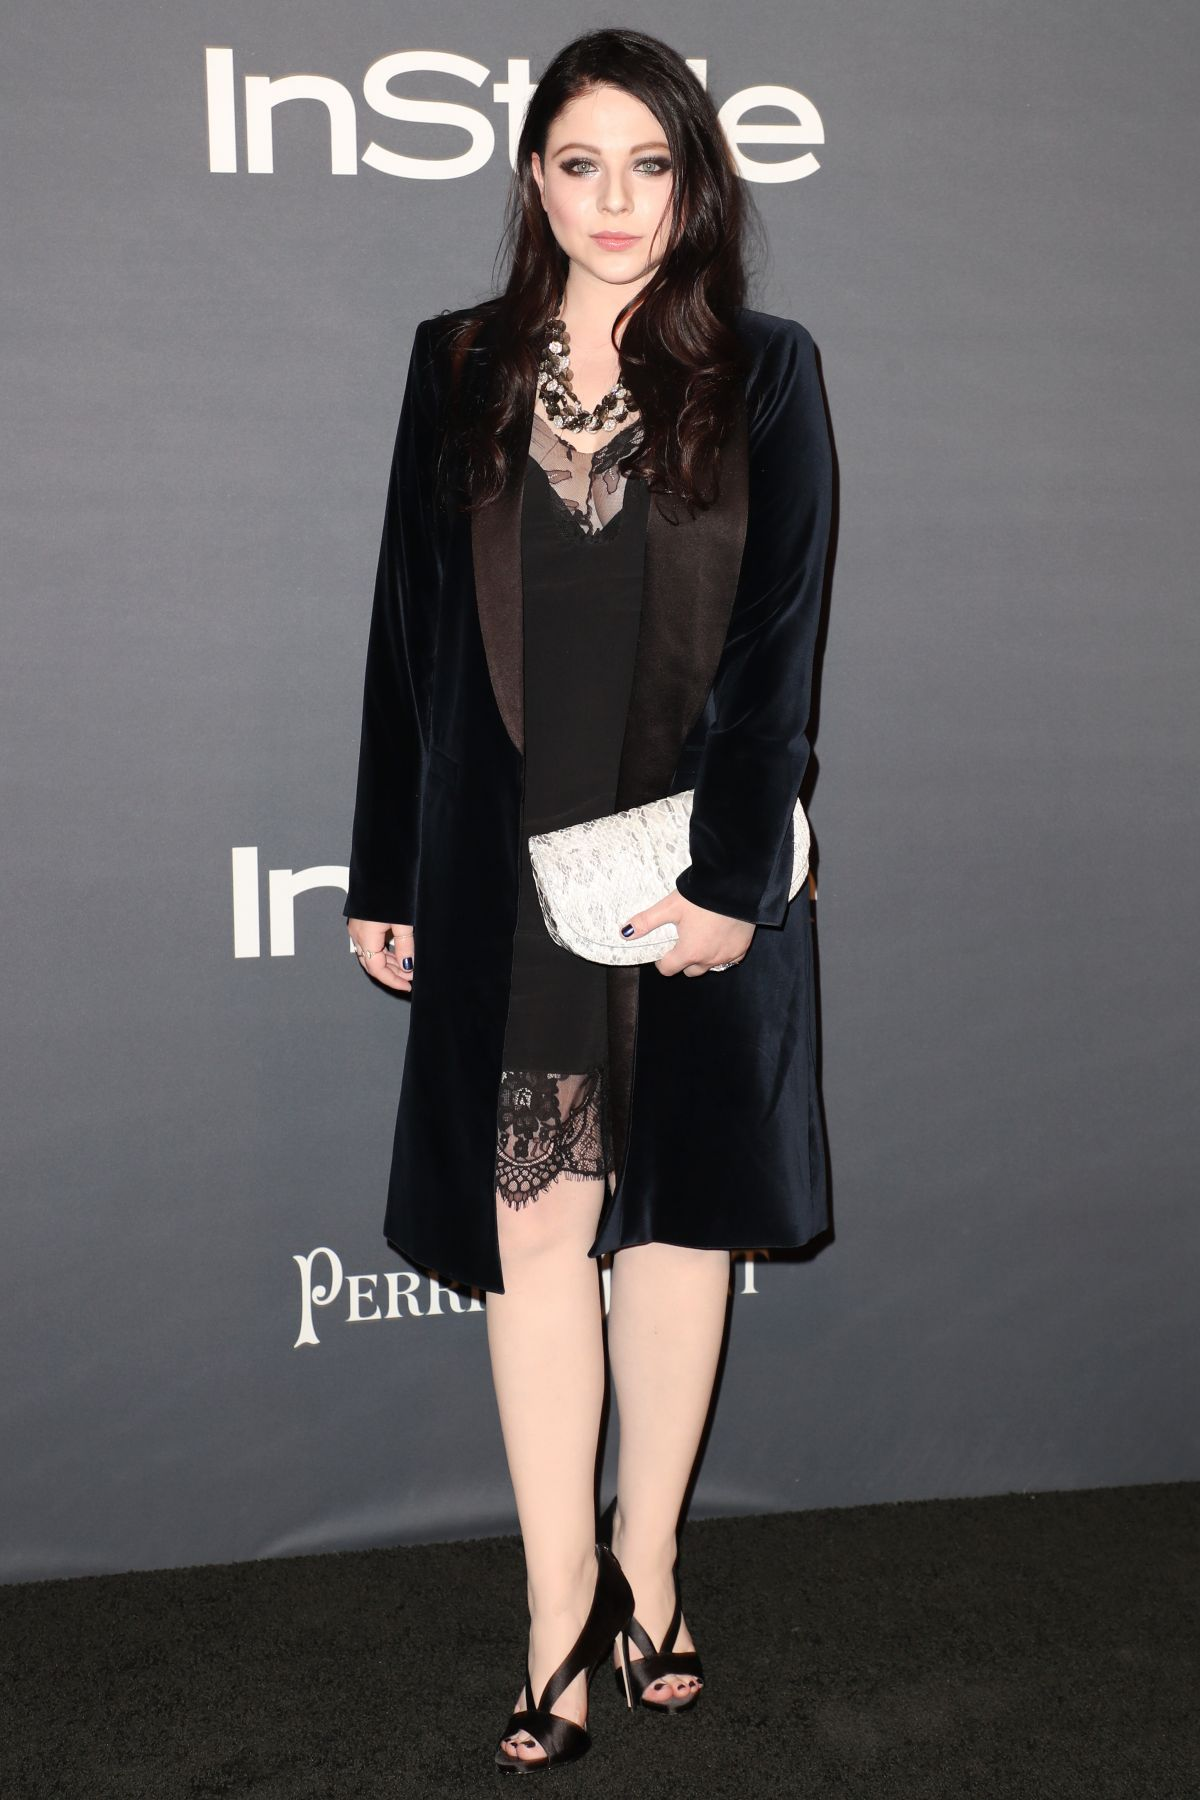 Michelle Trachtenberg At InStyle Awards in Los Angeles